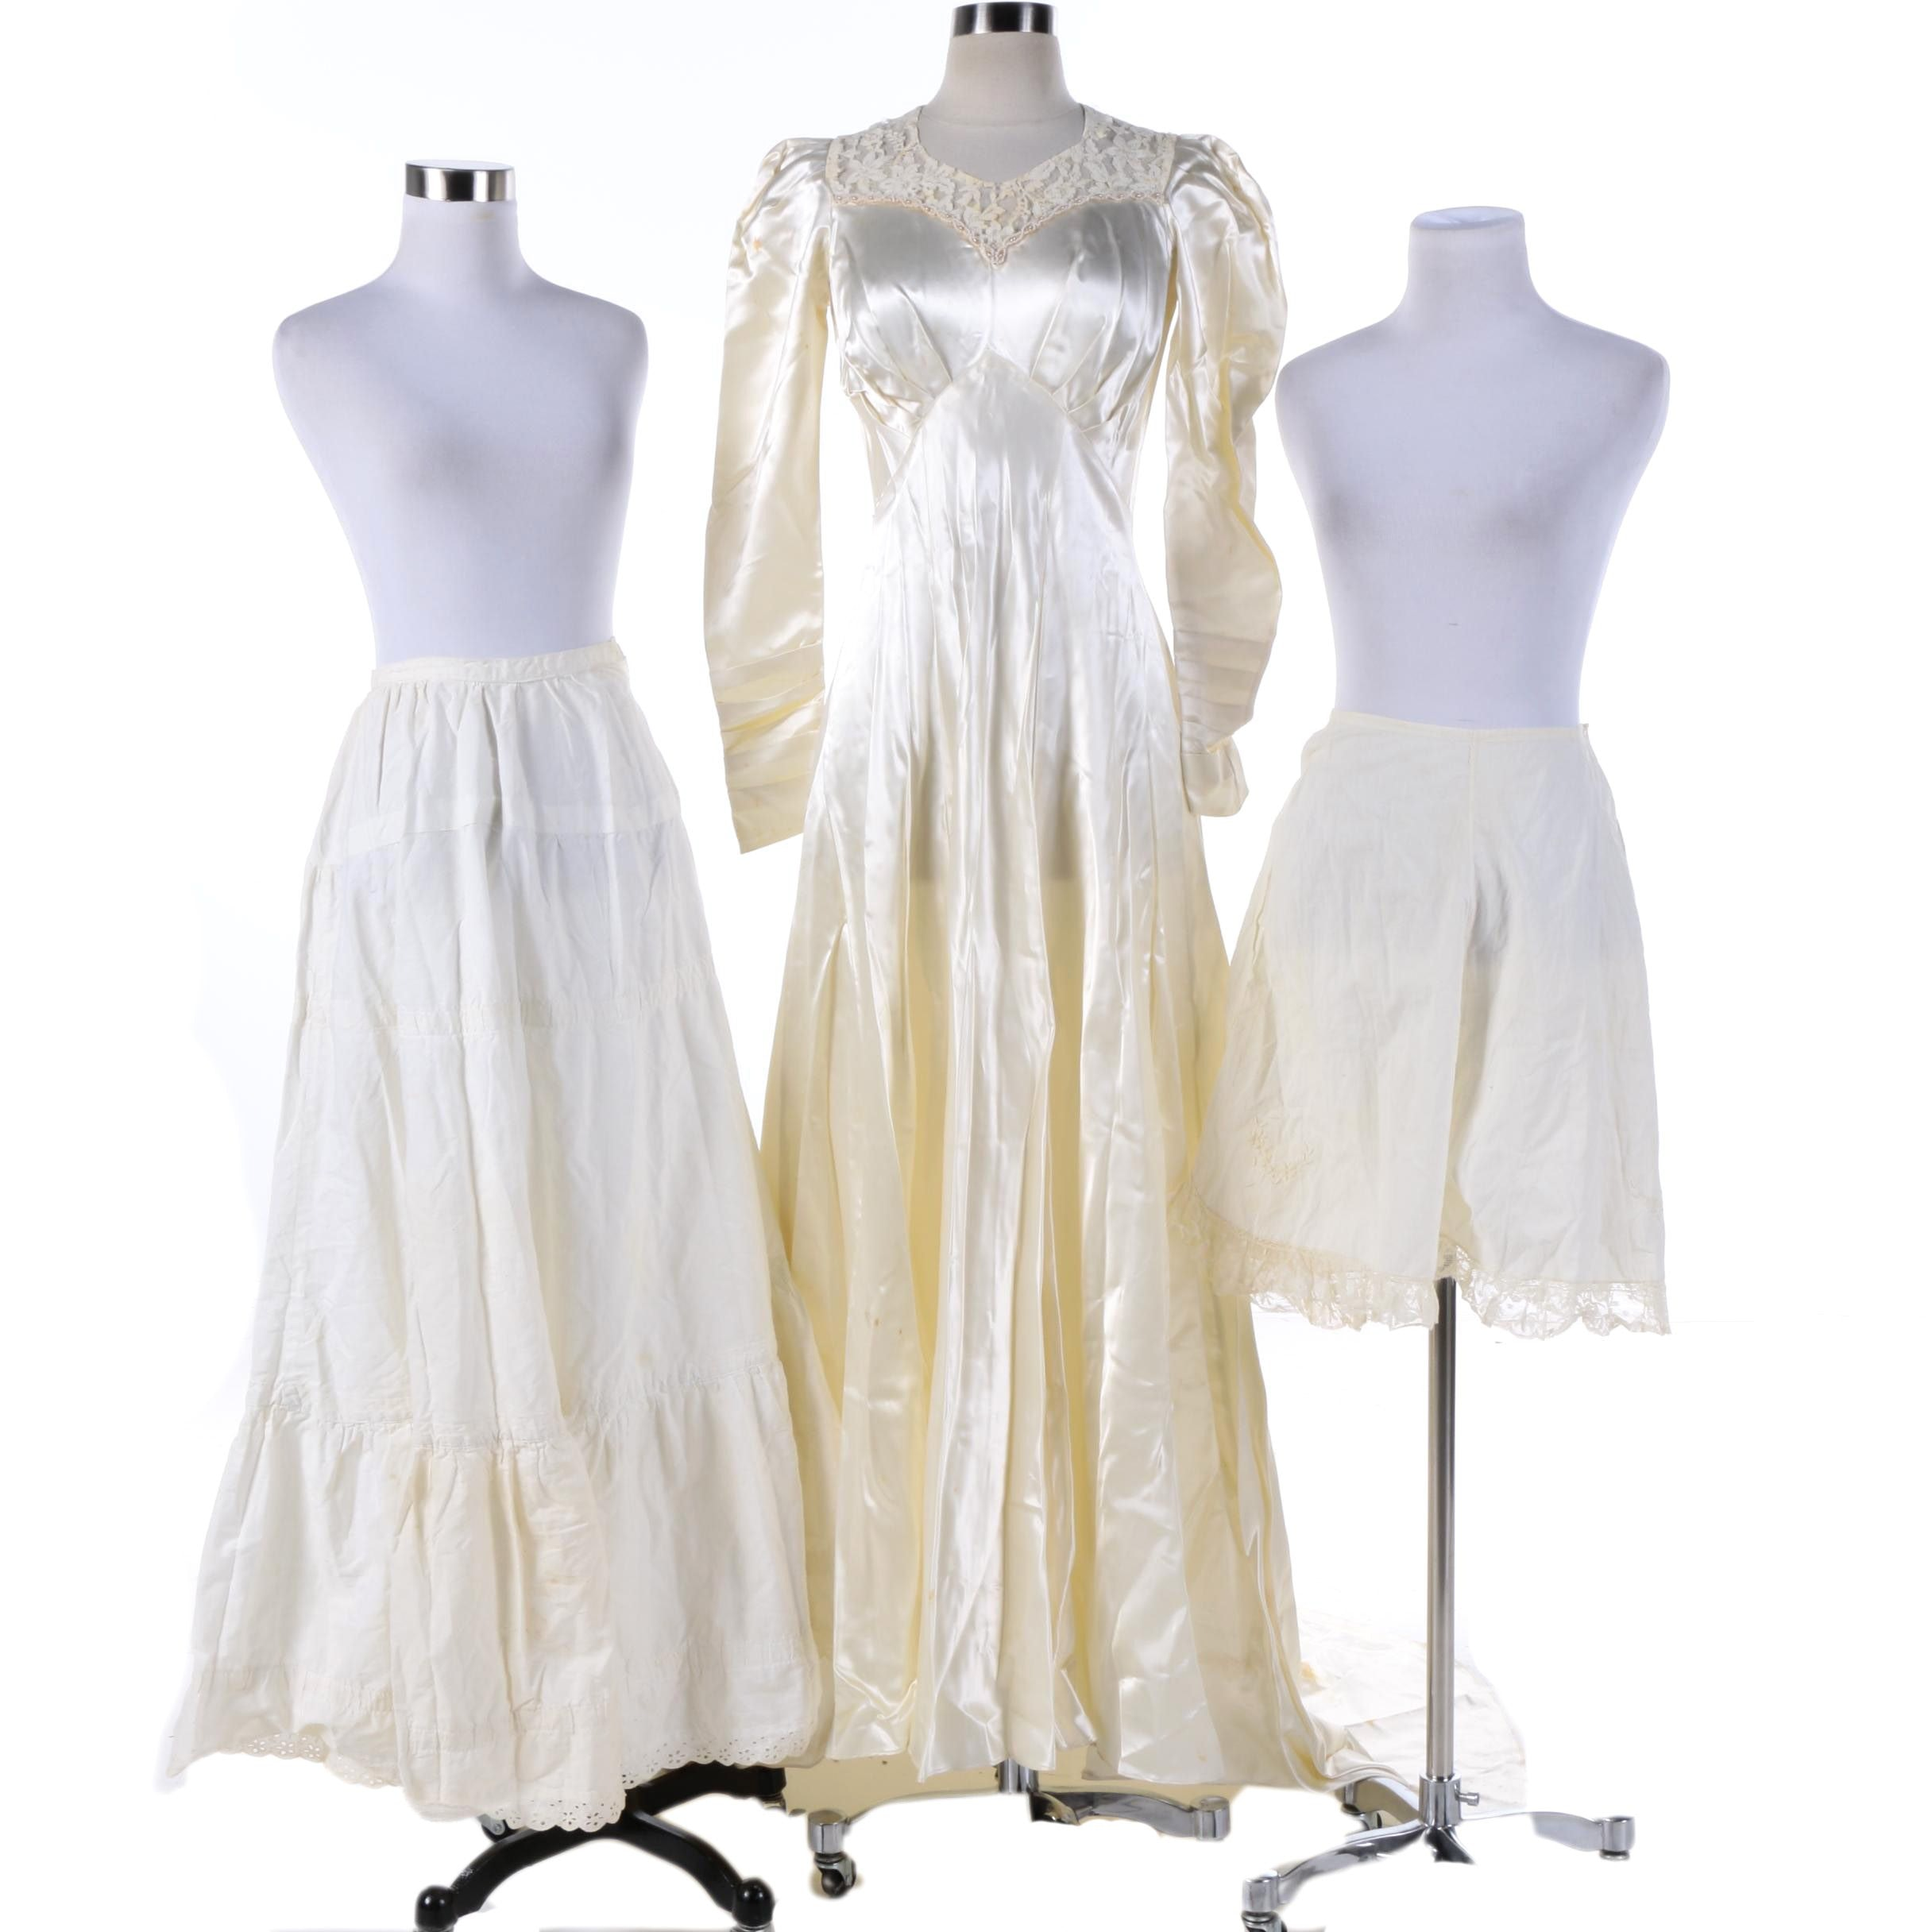 Circa 1940s Vintage Satin Wedding Dress, Crinoline and Bloomers